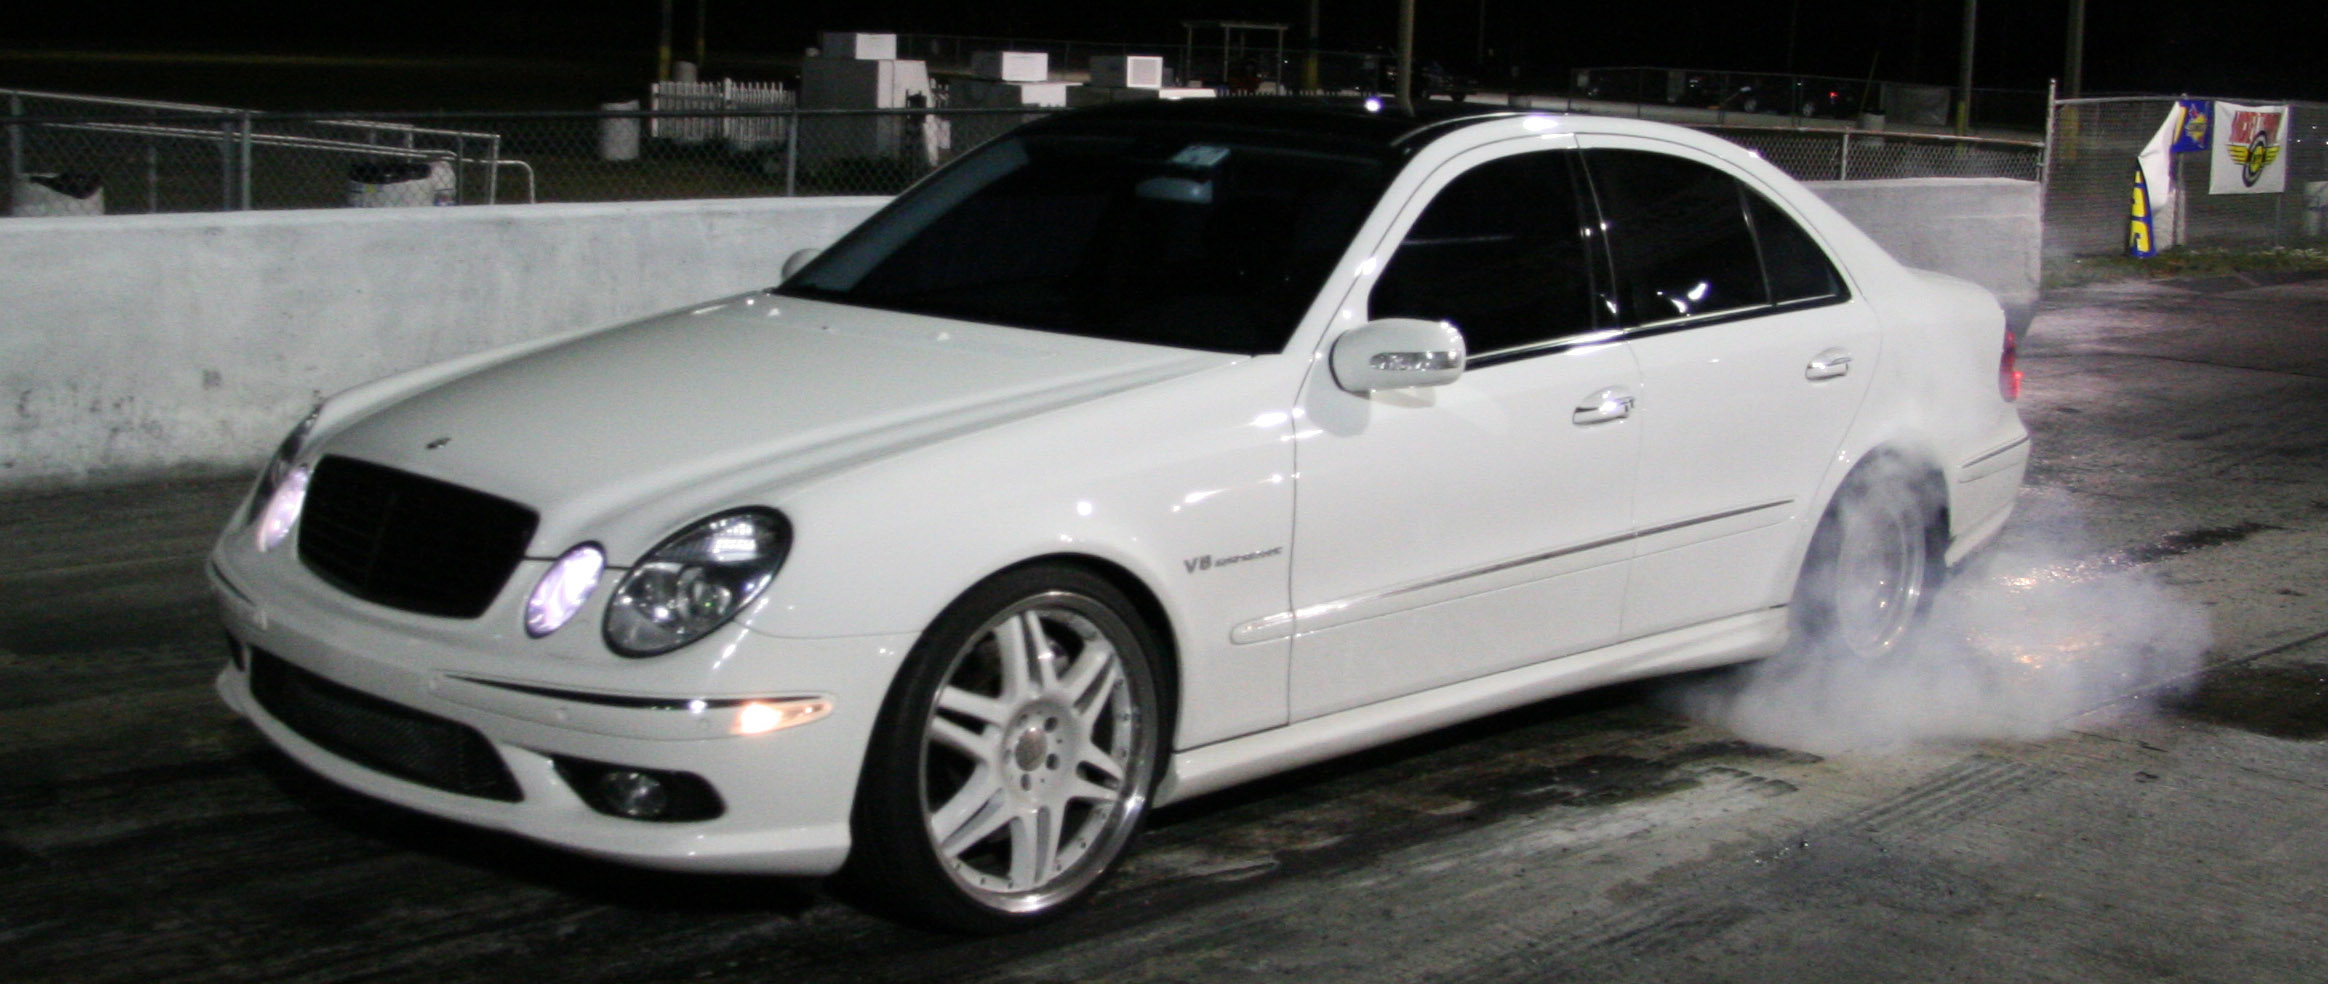 2005 mercedes benz e55 amg vrus nitrous dyno sheet for 2005 mercedes benz e55 amg